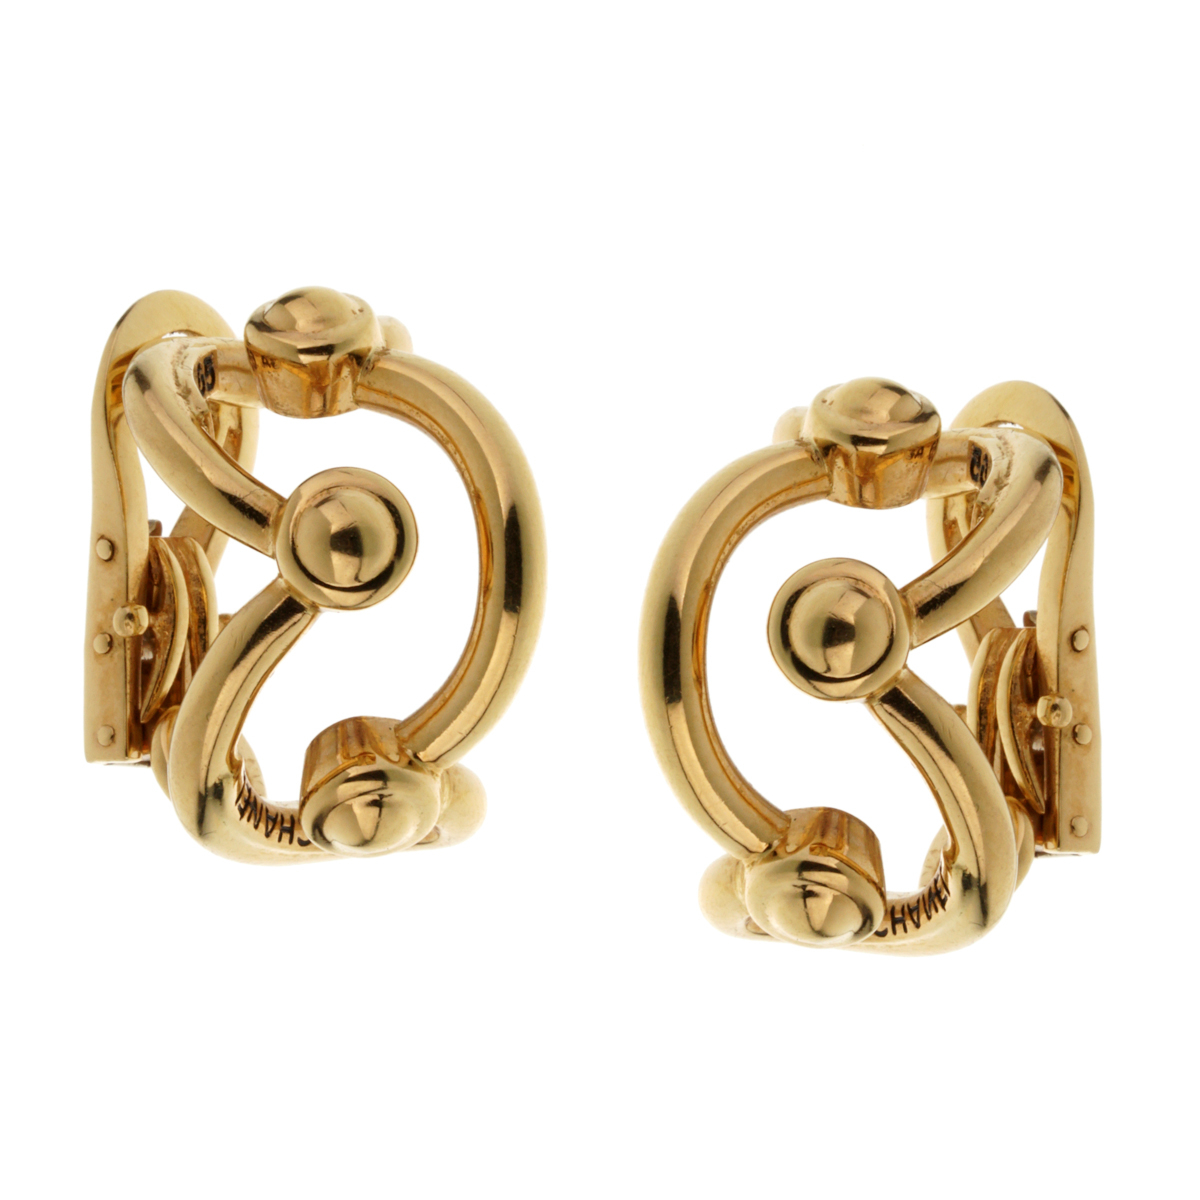 Chanel Vintage Yellow Gold Hoop Earrings